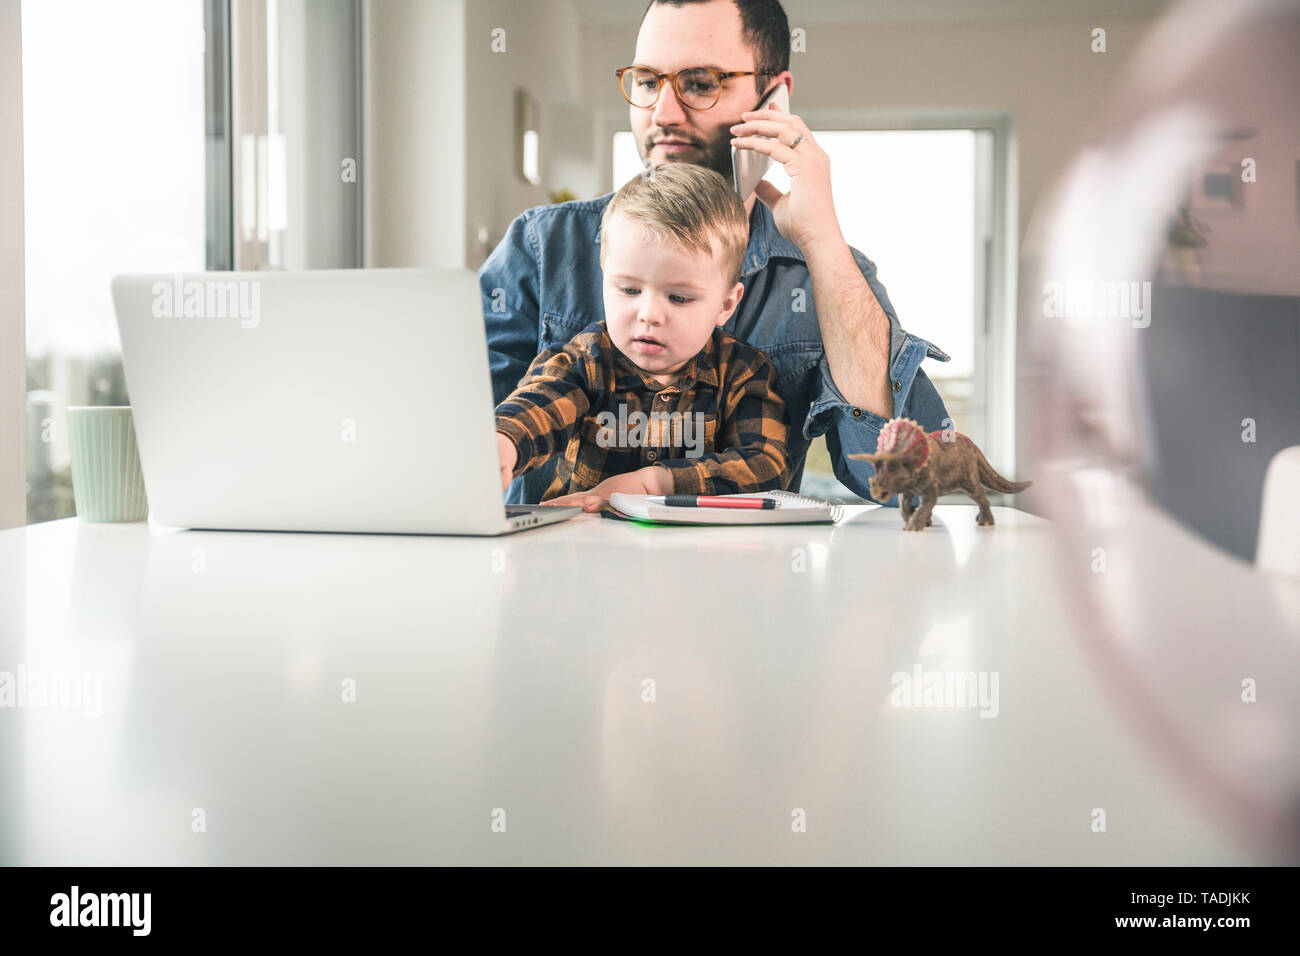 Father working at table in home office with son sitting on his lap - Stock Image